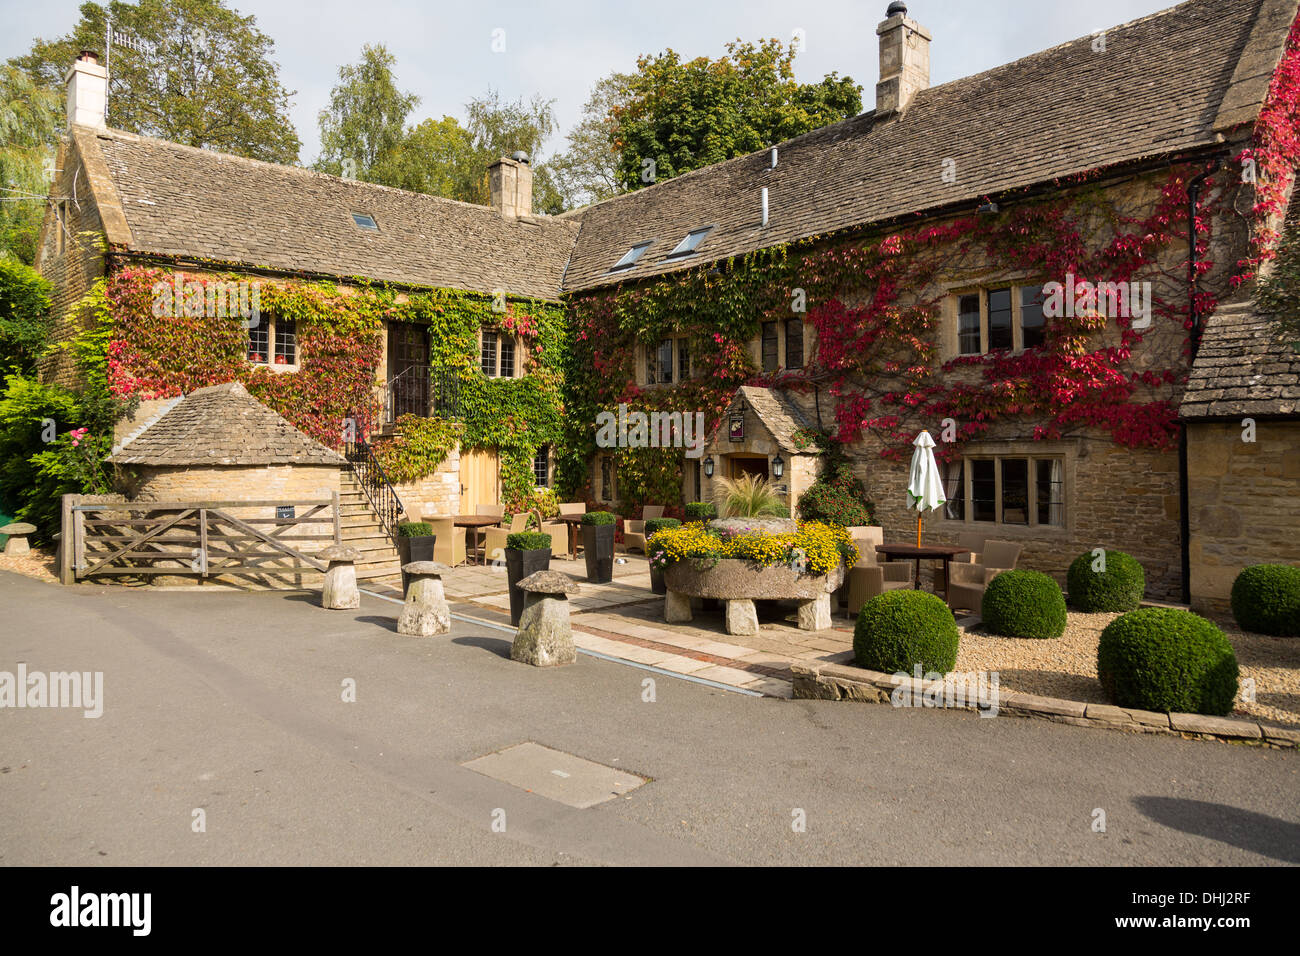 The Slaughters Country Inn, Lower Slaughter, Cotswolds, Gloucestershire, England, UK - Stock Image